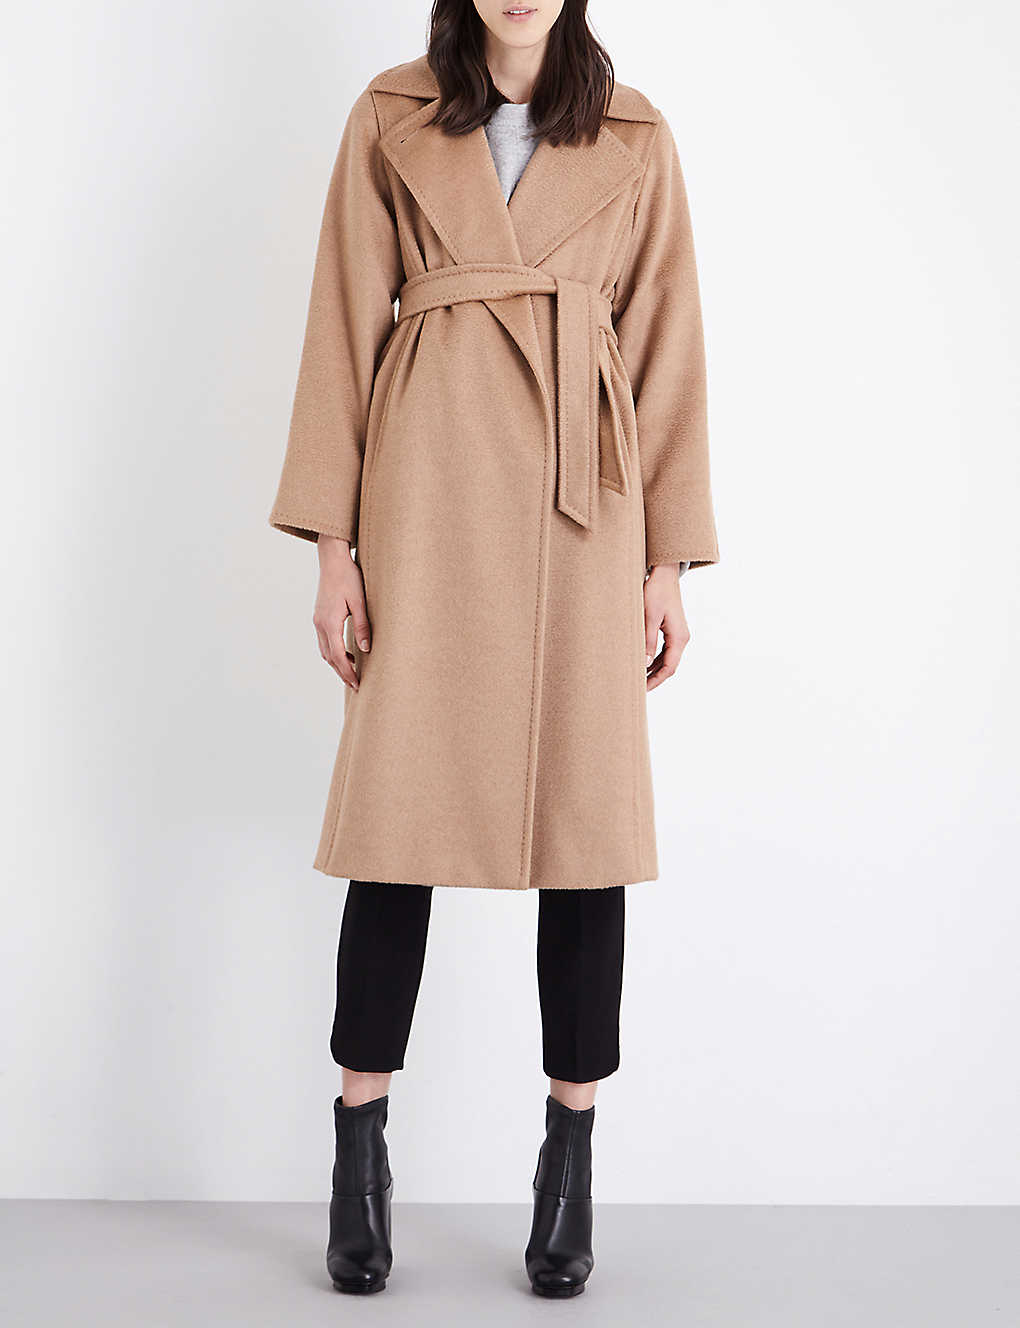 Designer Women Coats - Trench coats & more | Selfridges